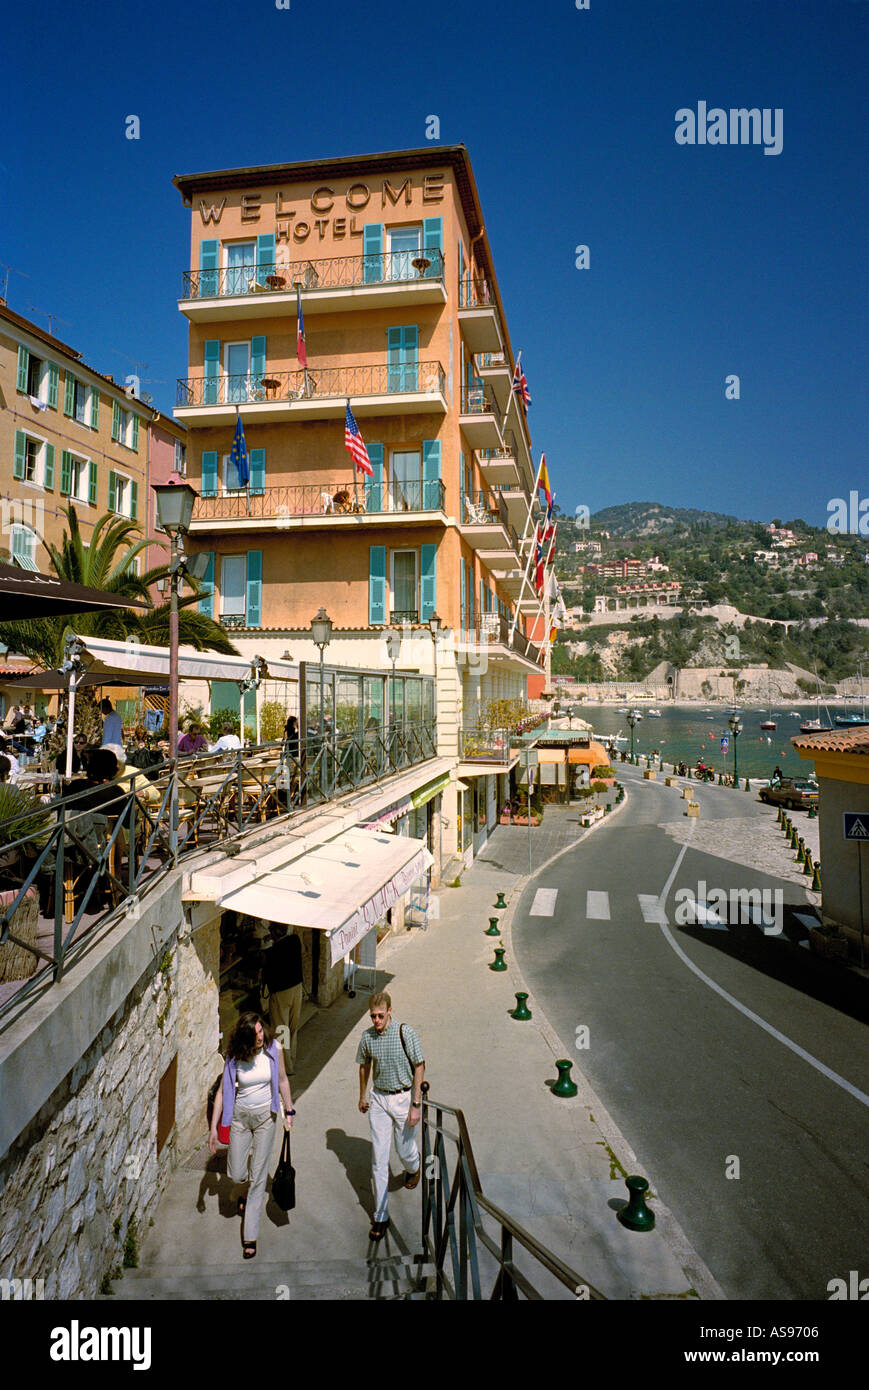 the welcome hotel at villefranche sur mer overlooking the narrow road stock photo 1611525 alamy. Black Bedroom Furniture Sets. Home Design Ideas